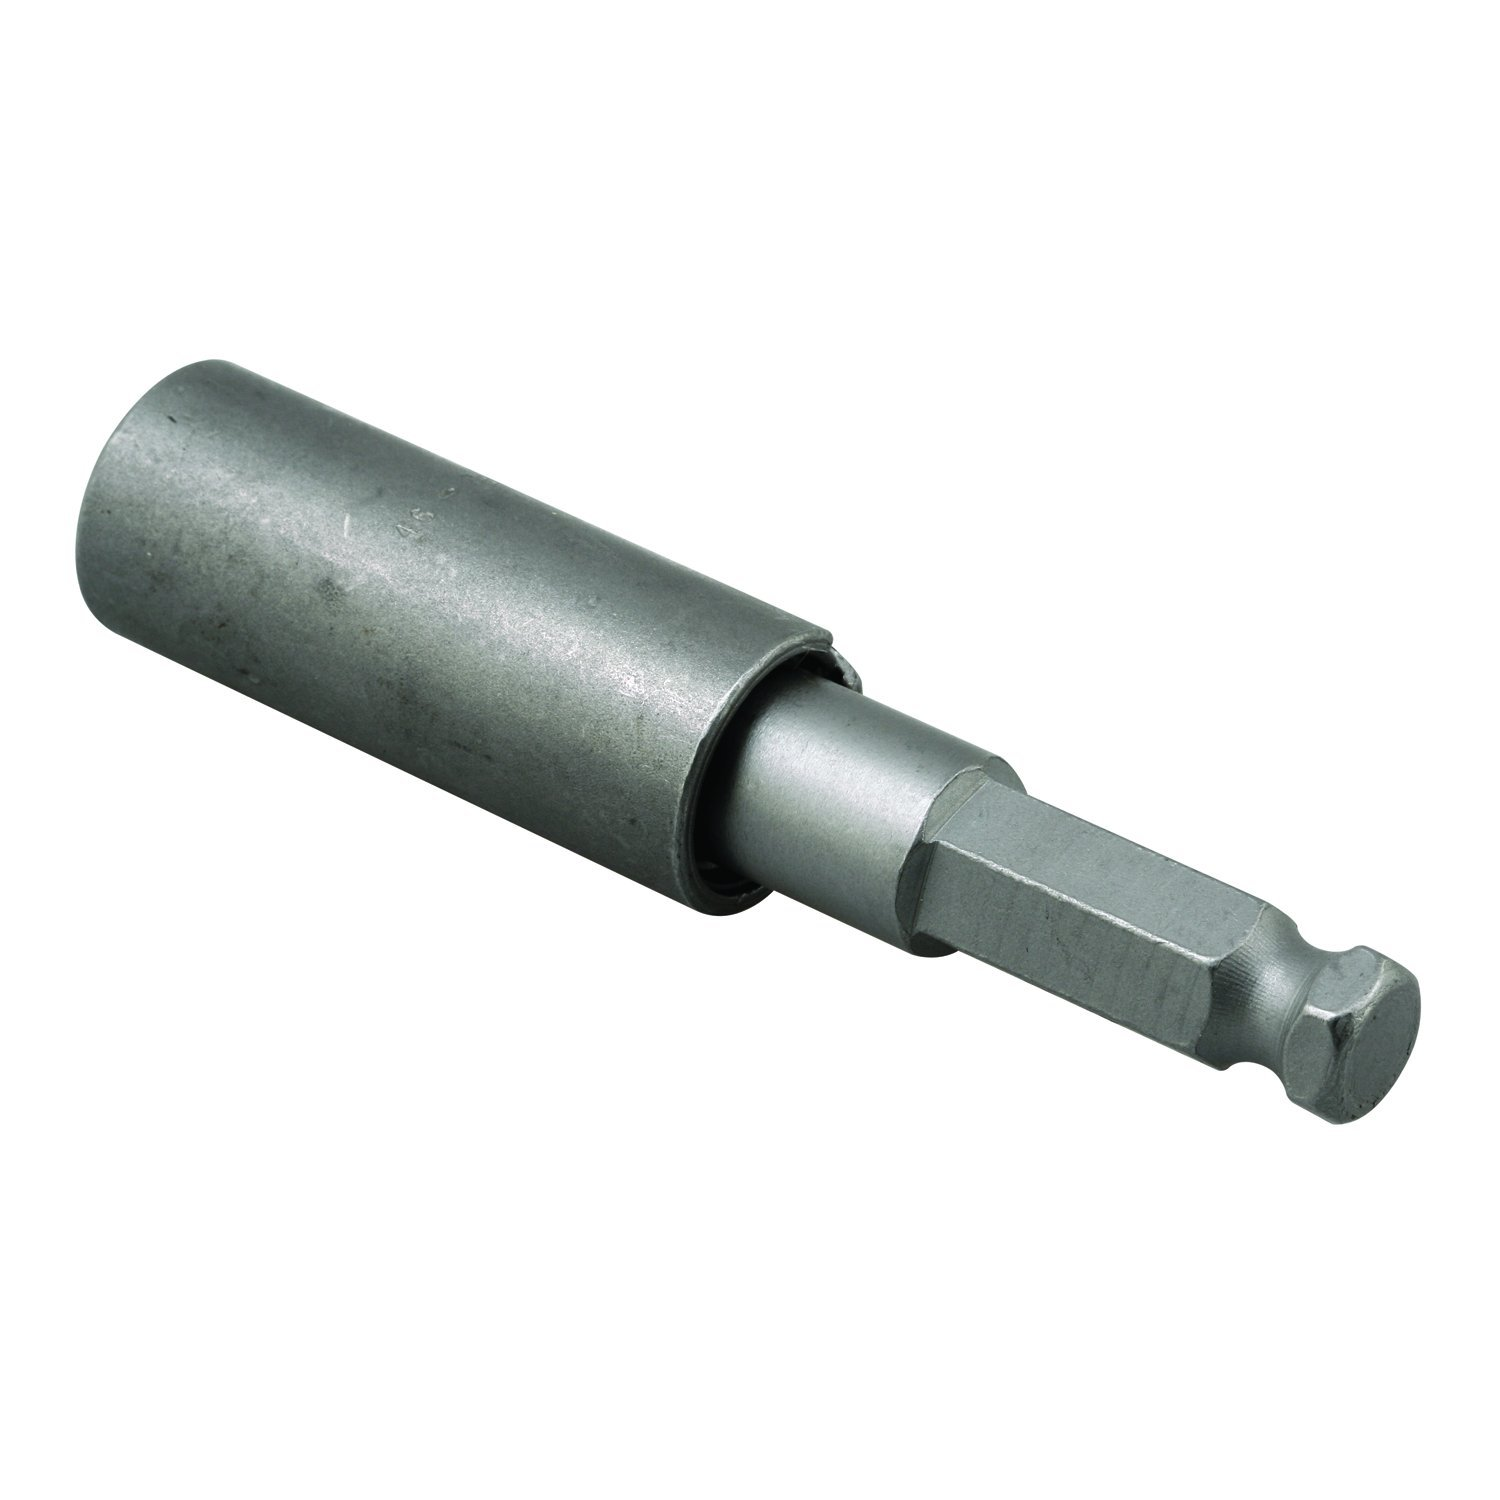 Prime-Line Products PH 17118 Jumbo Slotted Bit, 9/16'' x 3-11/16 In, Steel, Mill Finish, One-Way Slotted